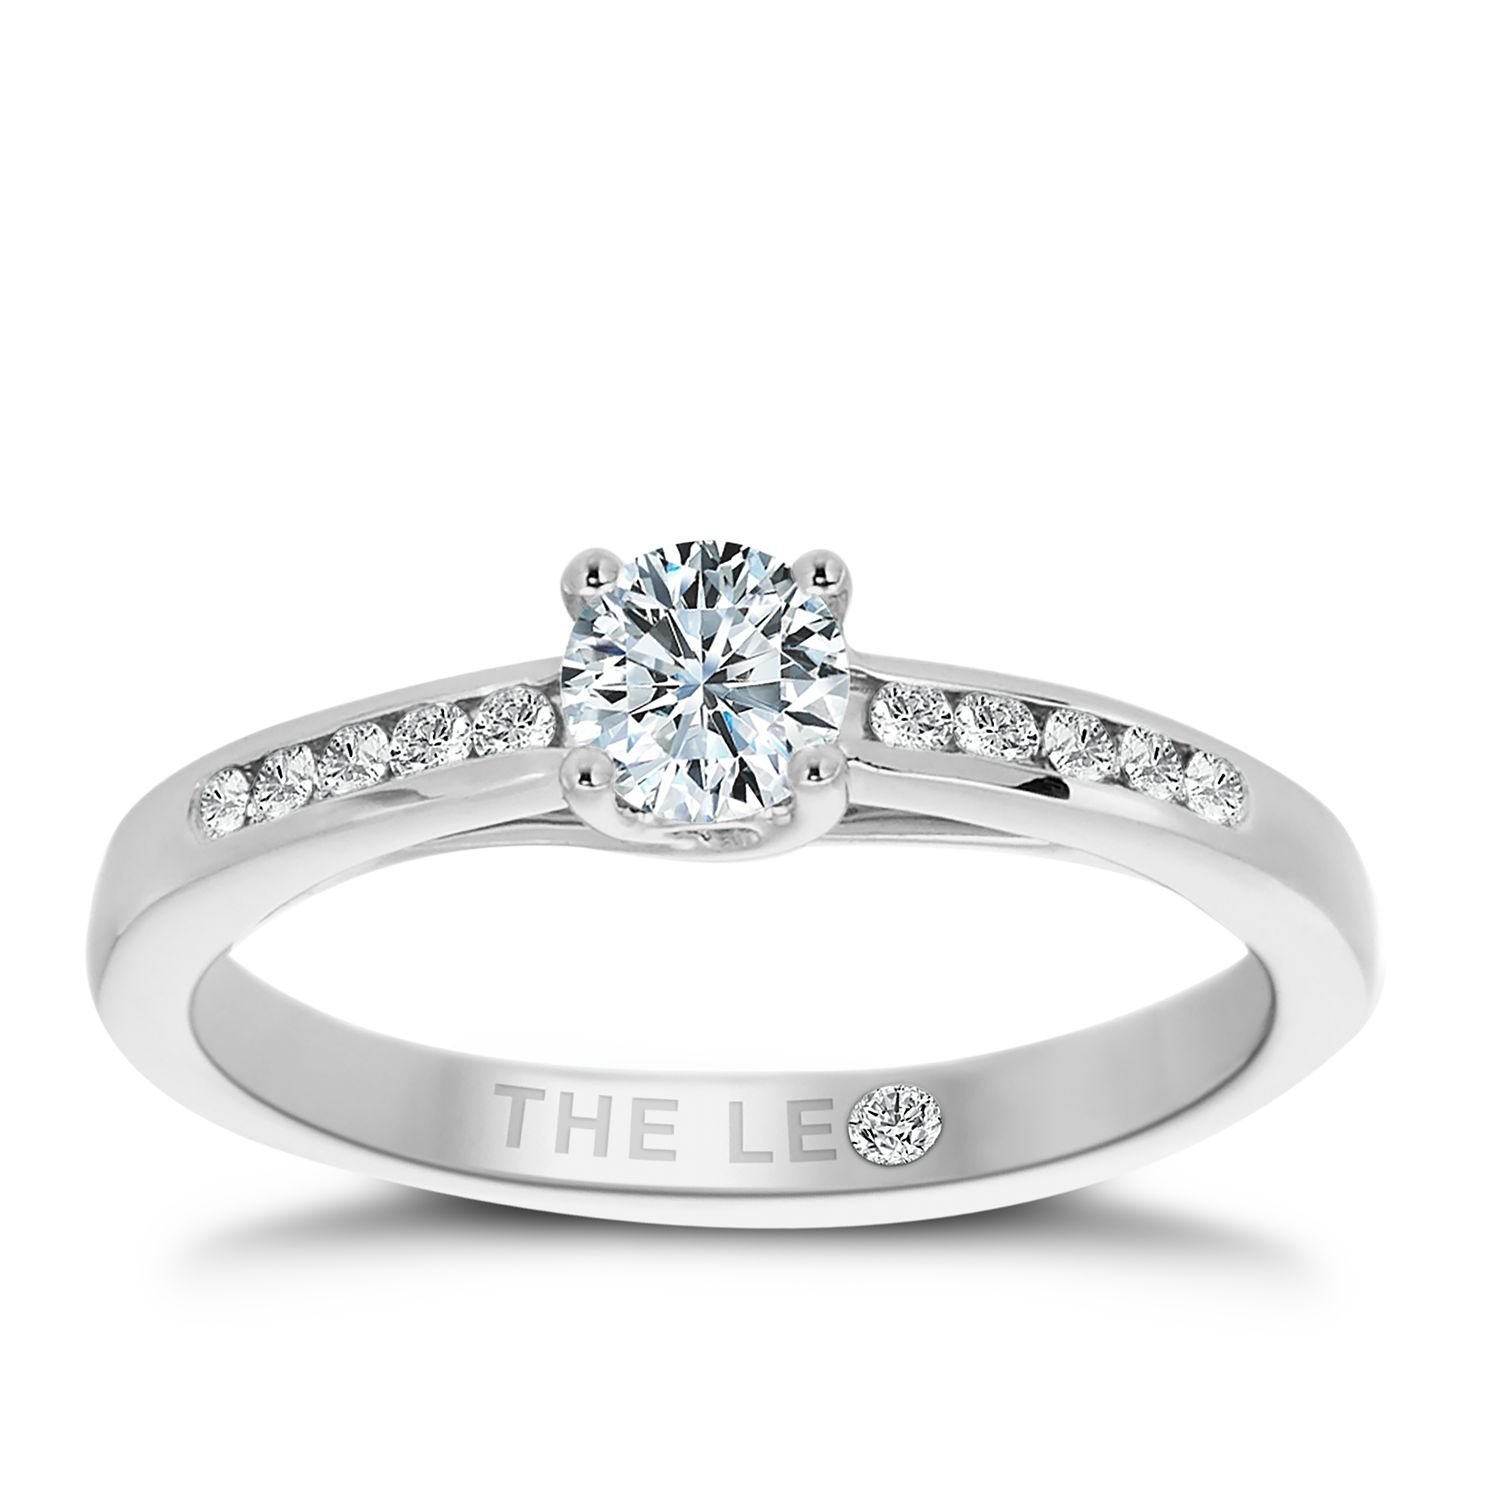 Leo Diamond 18ct White Gold 2/5ct I-I1 Solitaire Ring - Product number 1660136